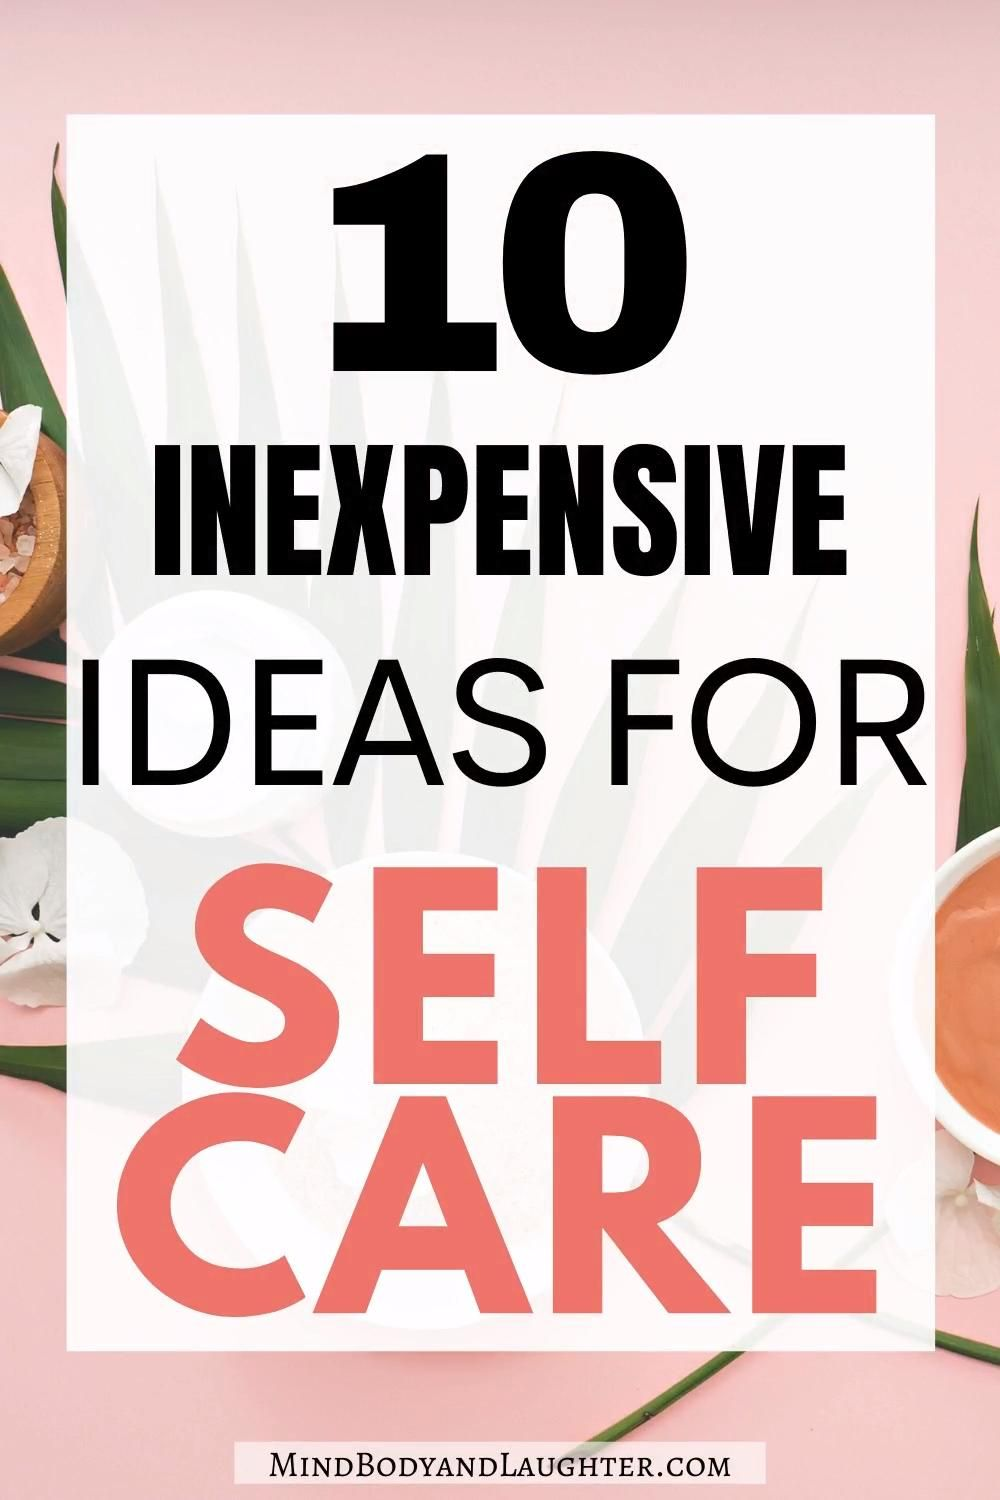 Check out these 10 budget-friendly ideas for a perfect self care day. You don't have to go shopping to practice self care and destress. Challenge yourself to make a self care checklist and give time for yourself at least 10-30 minutes daily - not just on Sunday!  These are some of my favorite tips, so click to read more details and learn to relax. #selfcare #selflove #stressrelief #healthtips #wellness #stressfree #selfcaretips